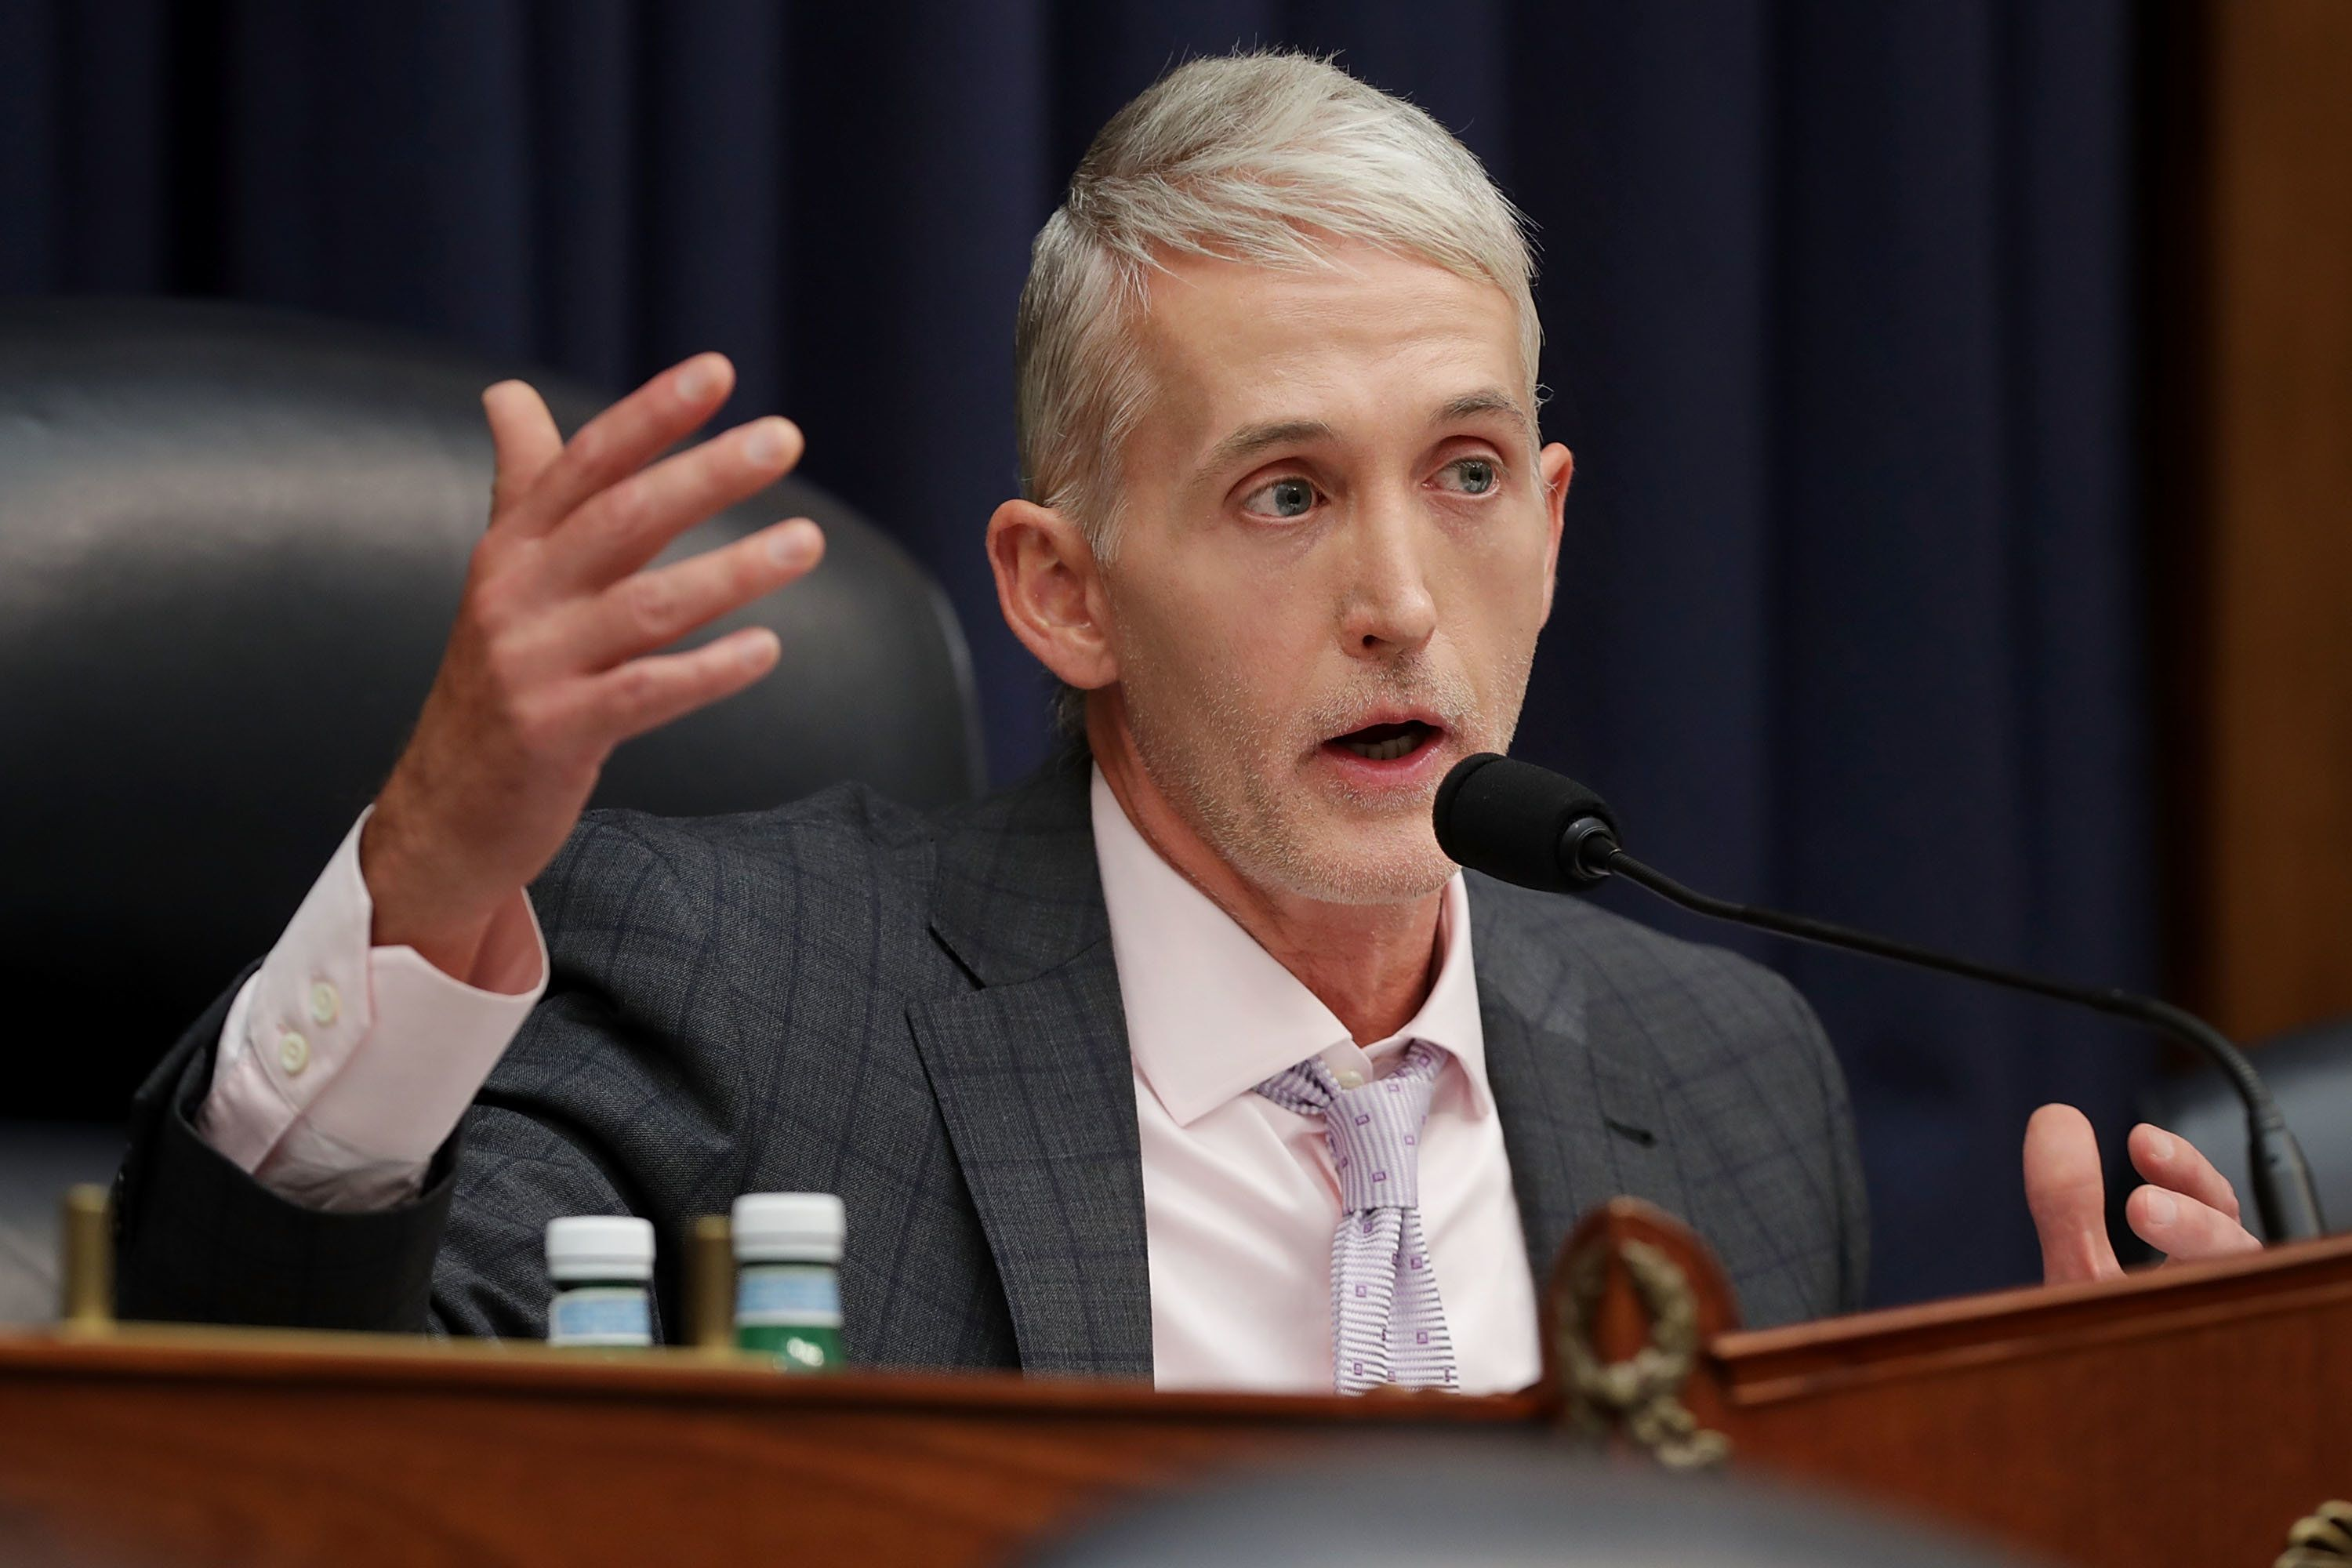 WASHINGTON, DC - JULY 12:  House Oversight and Government Reform Committee Chairman Trey Gowdy (R-SC) questions Deputy Assistant FBI Director Peter Strzok during ajoint hearing of his committee and the House Judiciary Committee in the Rayburn House Office Building on Capitol Hill July 12, 2018 in Washington, DC. While involved in the probe into Hillary ClintonÕs use of a private email server in 2016, Strzok exchanged text messages with FBI attorney Lisa Page that were critical of Trump. After learning about the messages, Mueller removed Strzok from his investigation into whether the Trump campaign colluded with Russia to win the 2016 presidential election.  (Photo by Chip Somodevilla/Getty Images)